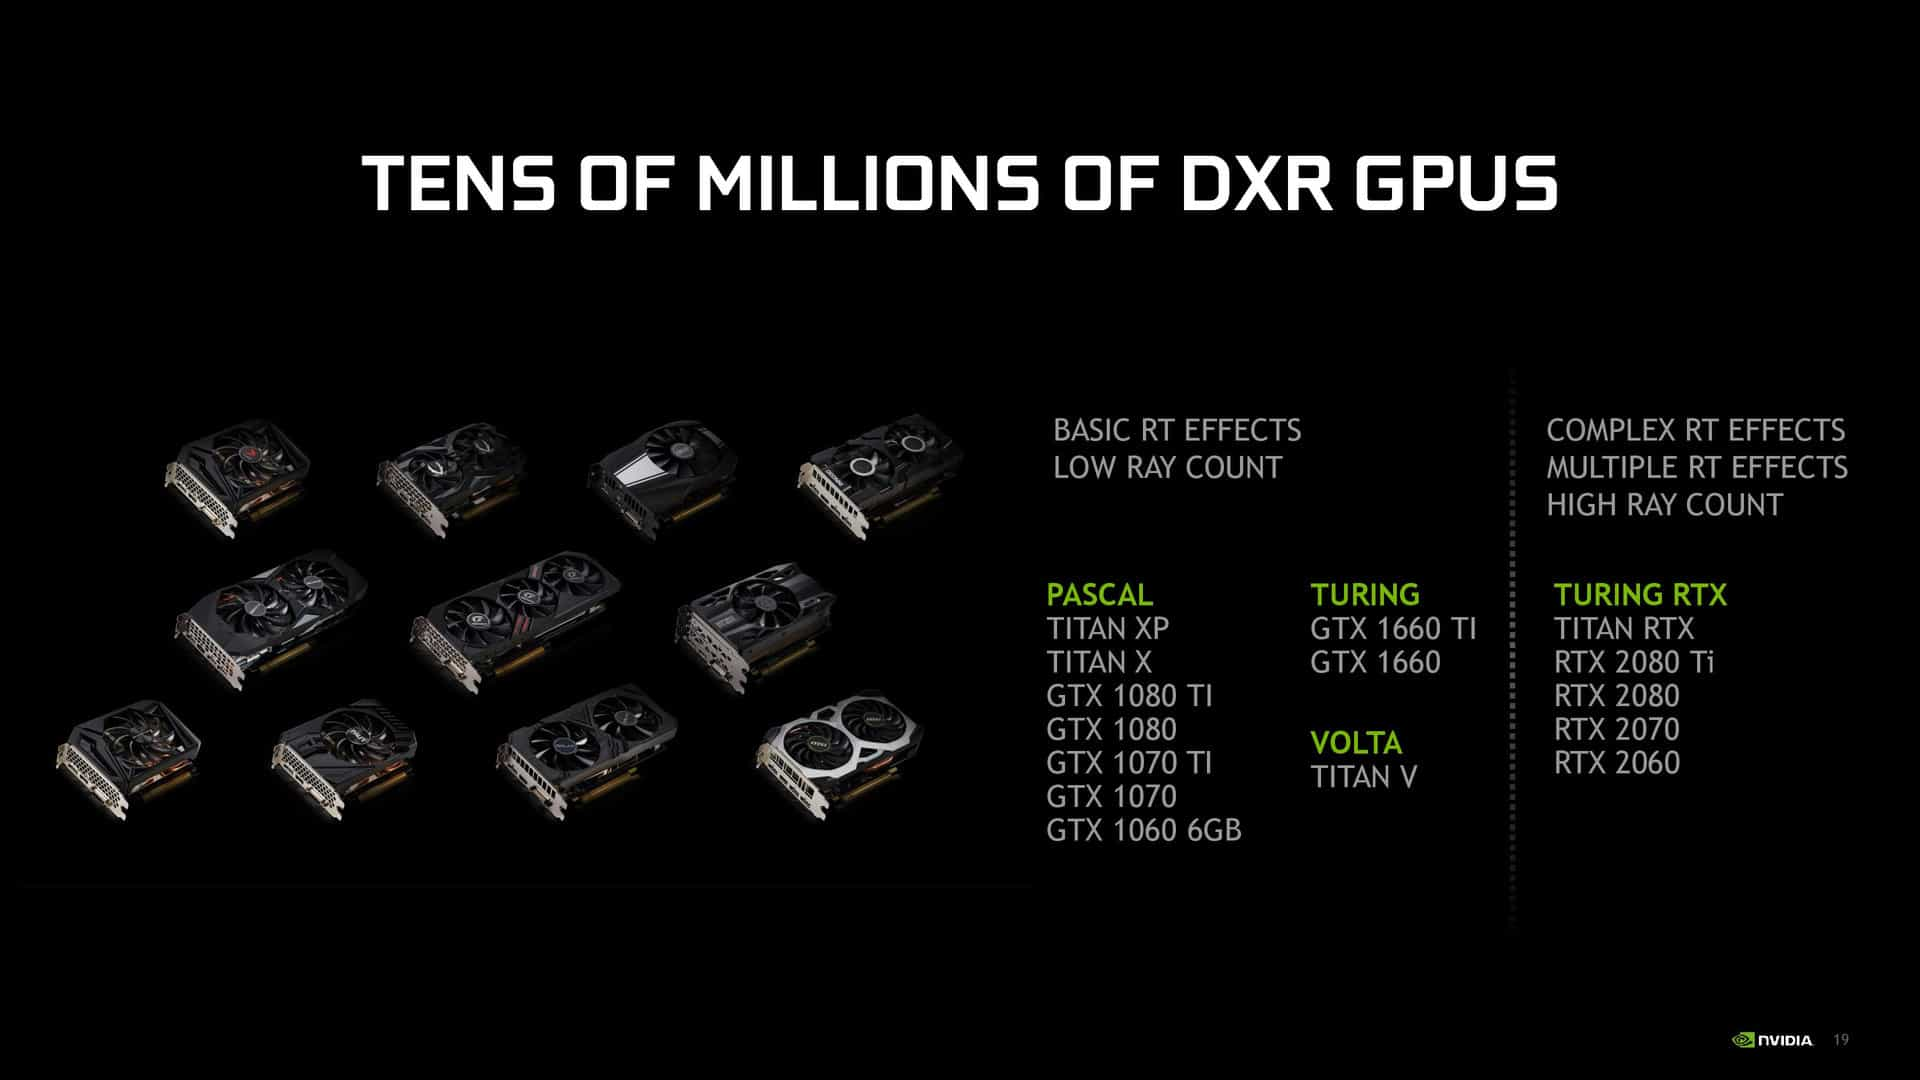 nvidia gdc 2019 ray tracing update prezentace anandtech 18